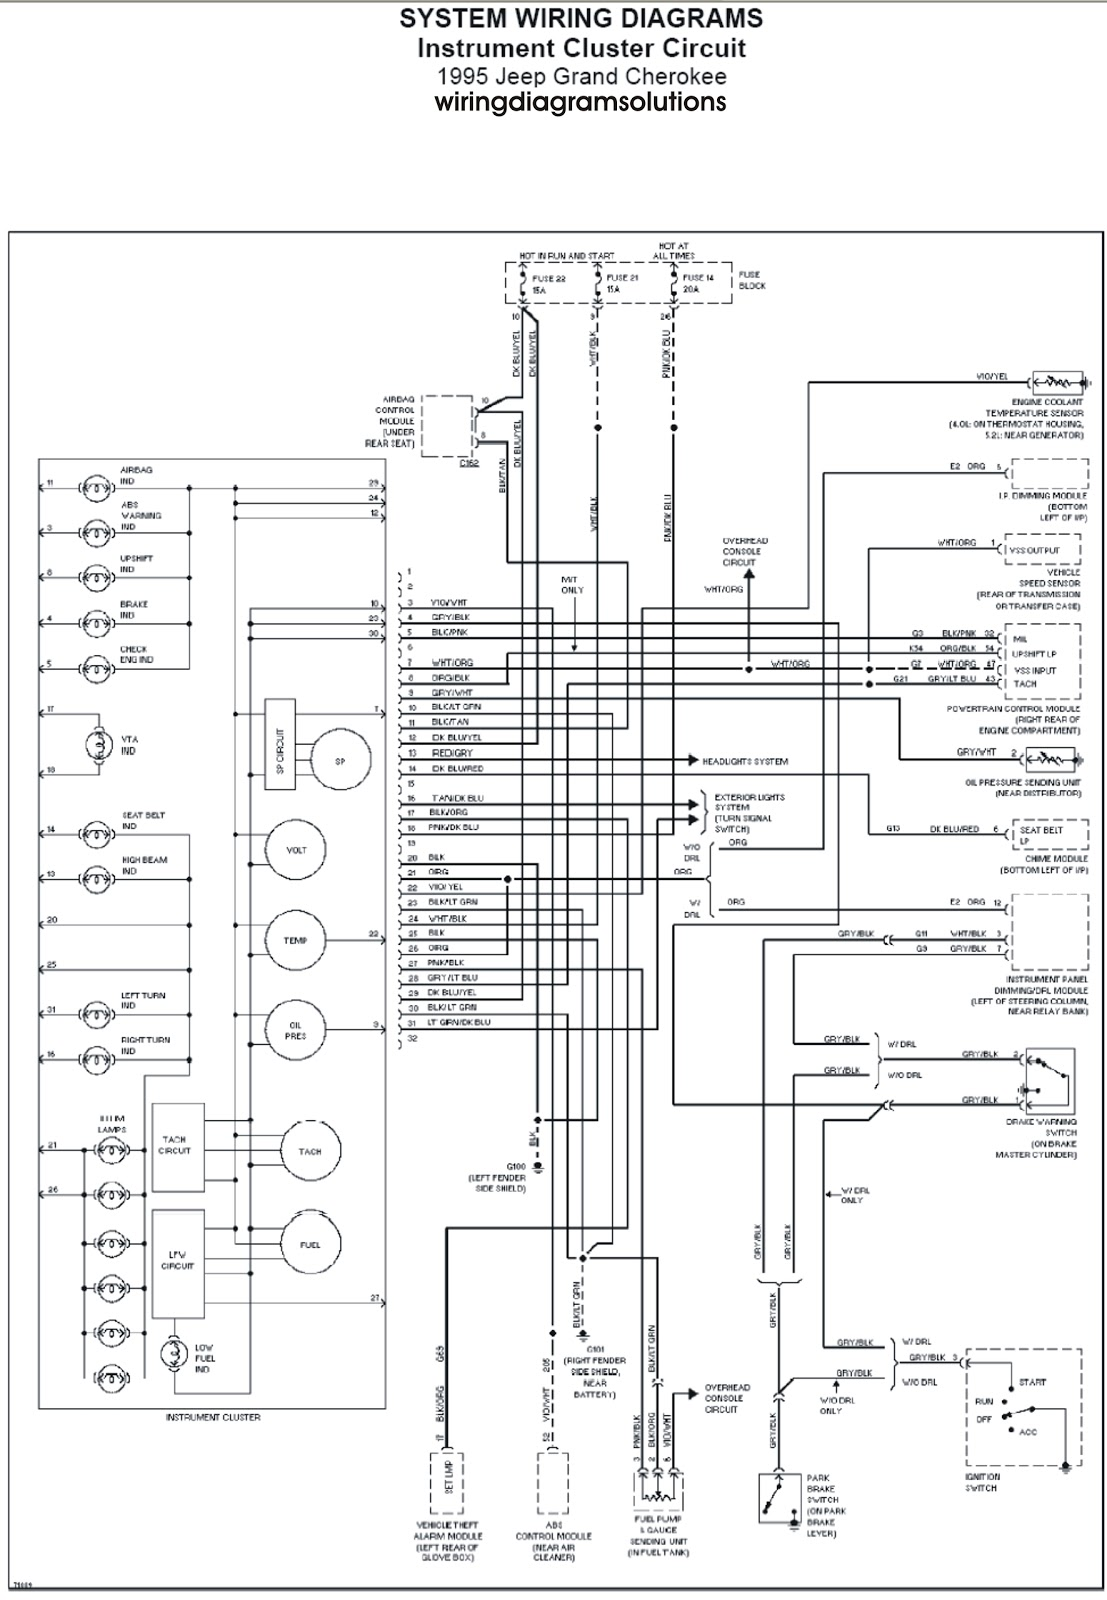 instrument+cluster+Circuit 95 jeep wiring diagram 28 images 1995 jeep wiring diagram 95 jeep wrangler wiring harness diagram at panicattacktreatment.co